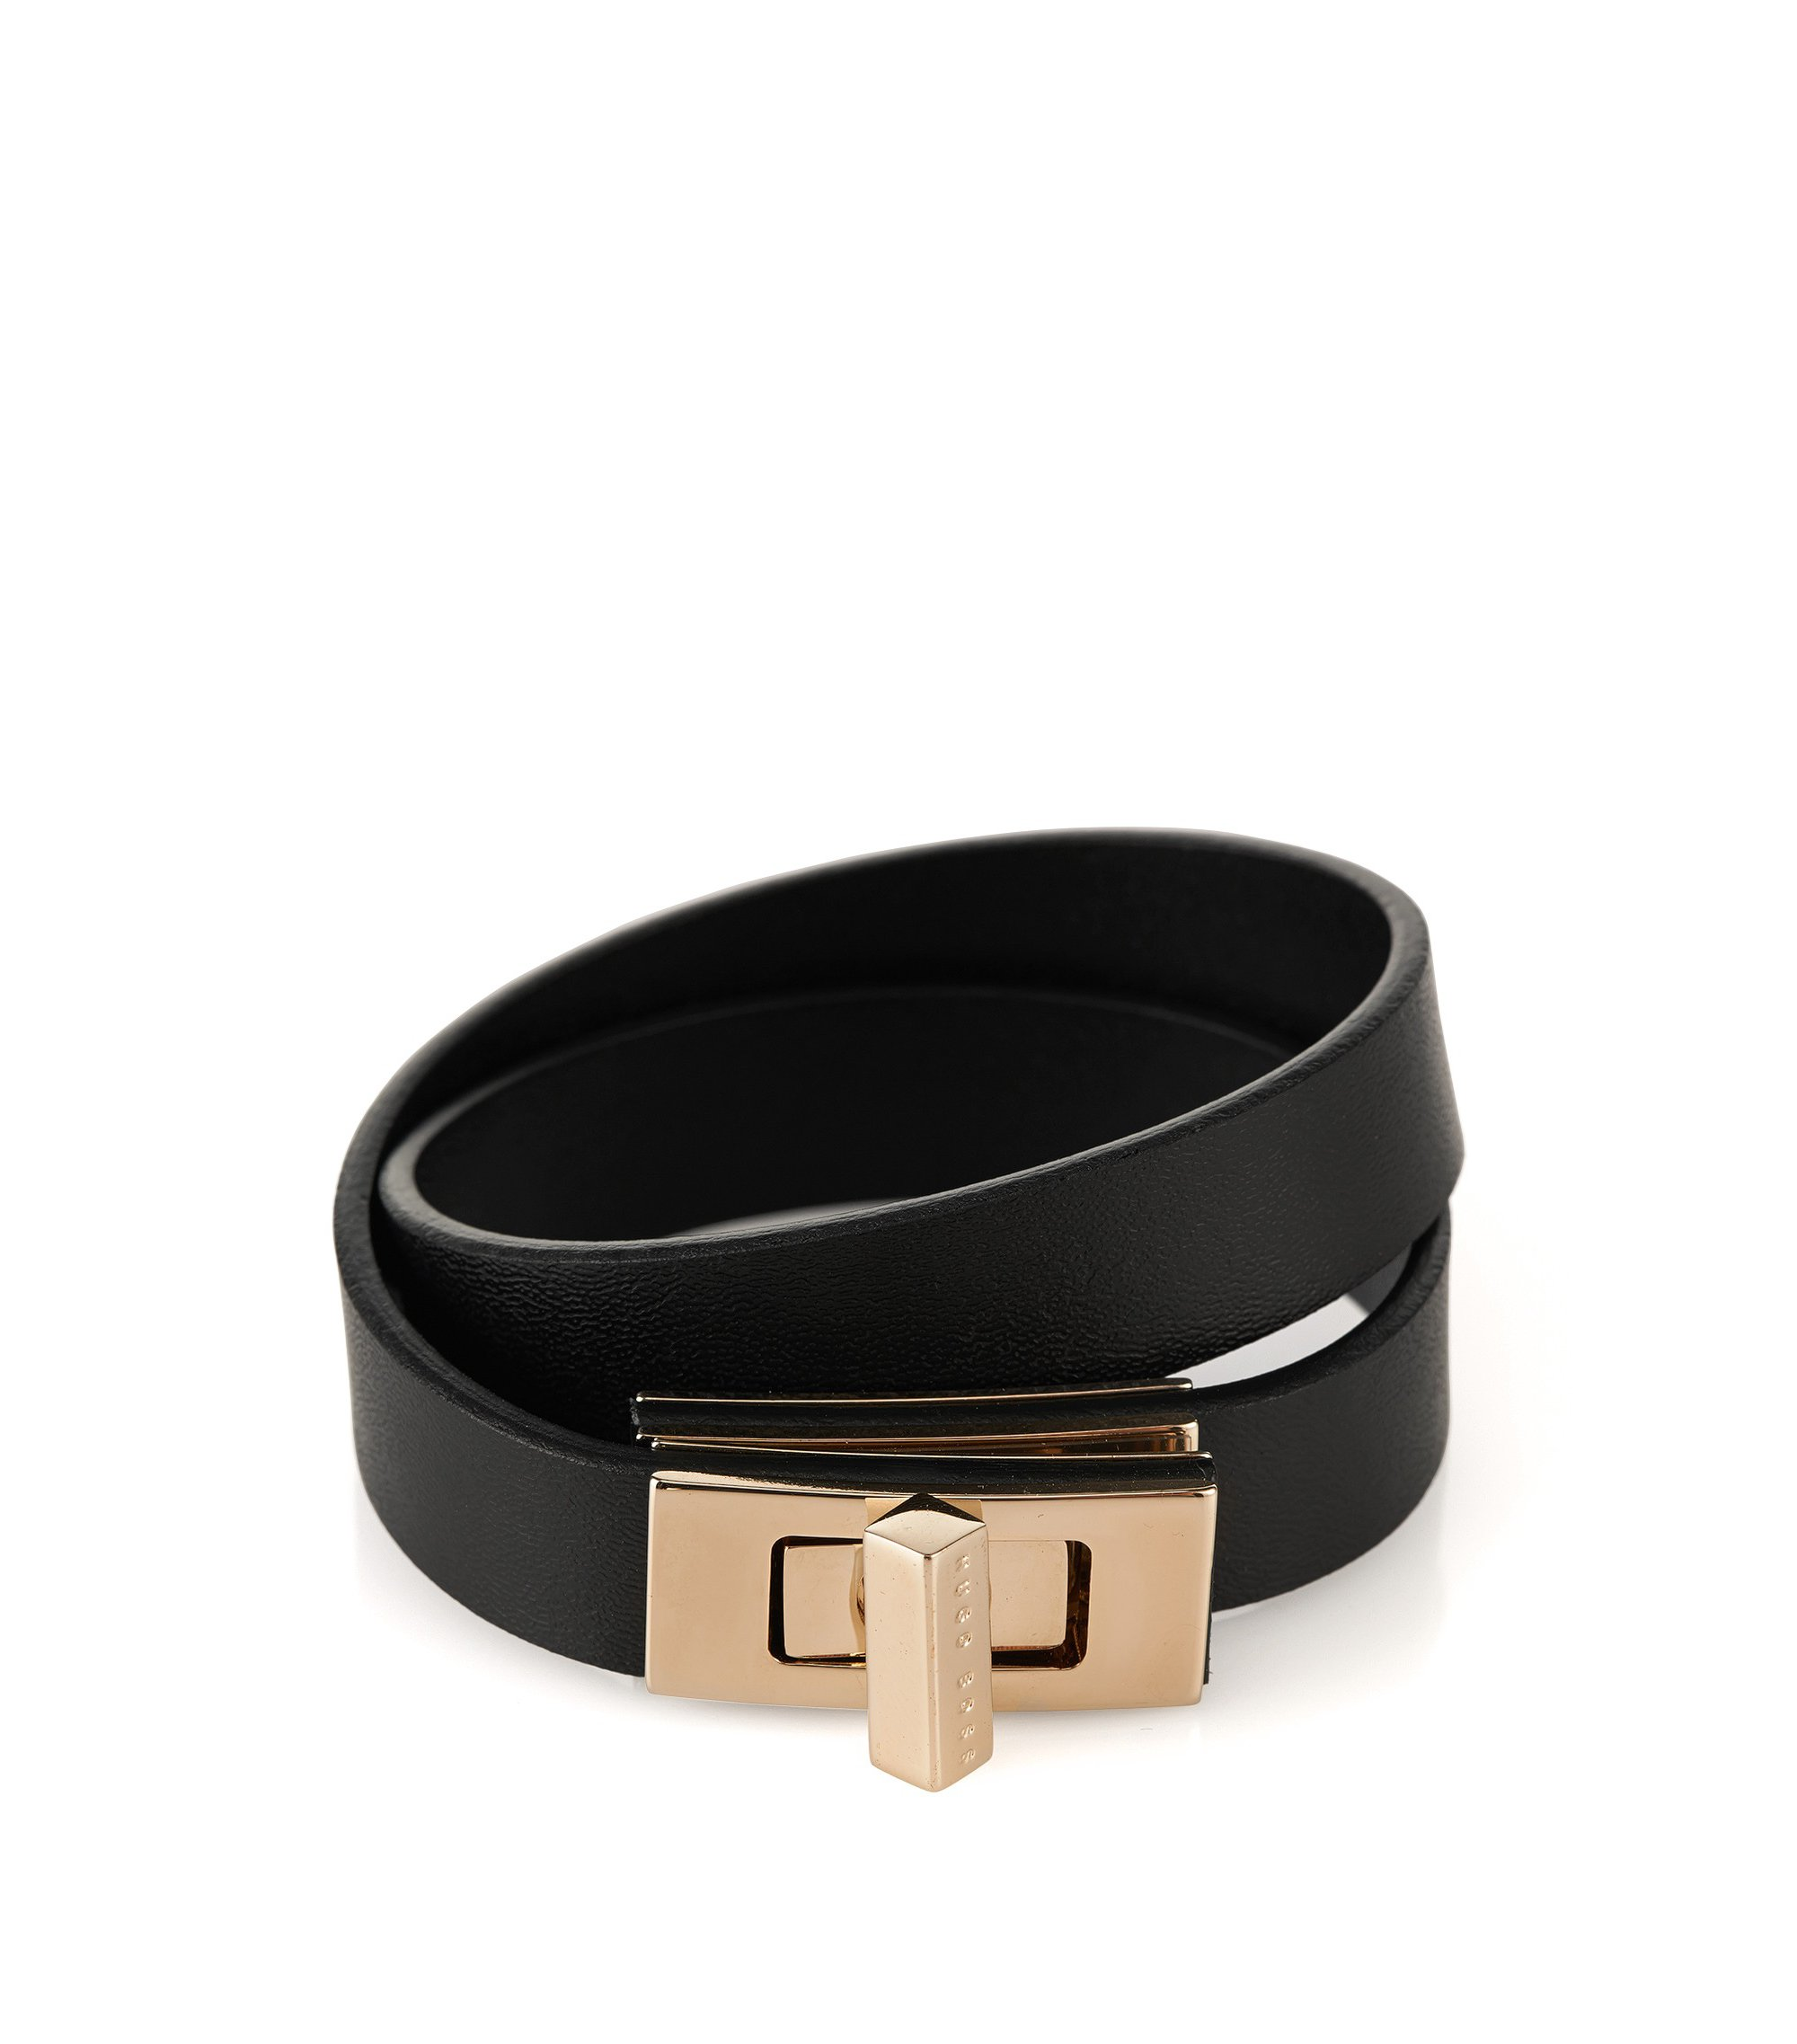 Plain BOSS Bespoke bracelet in leather, Black